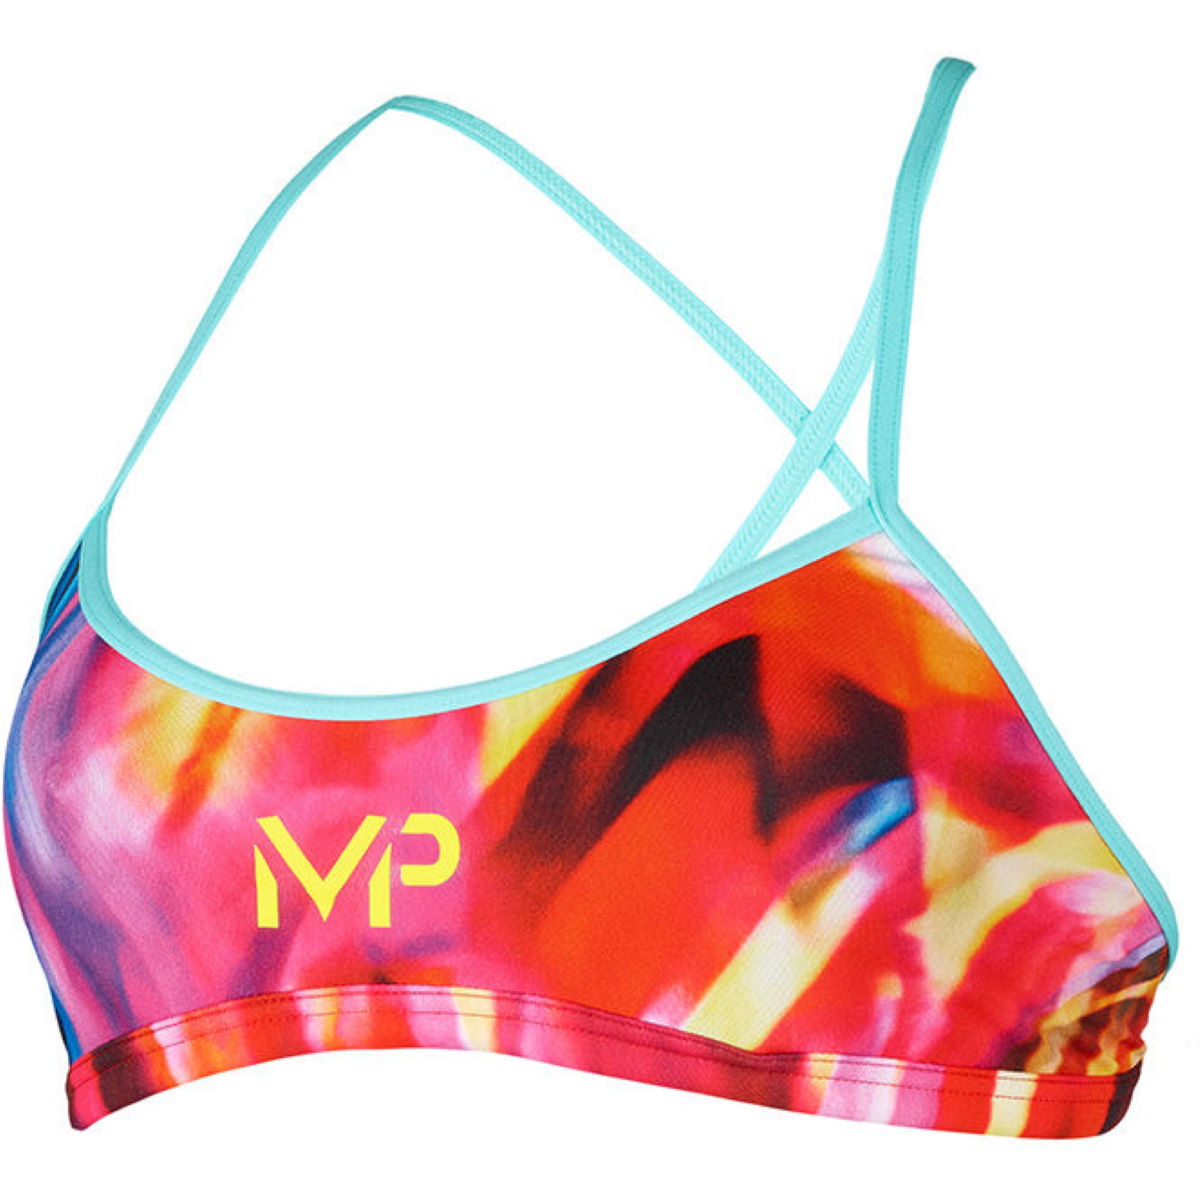 MP MP Michael Phelps Rumba 2 Piece Top   Two Piece Swimsuits